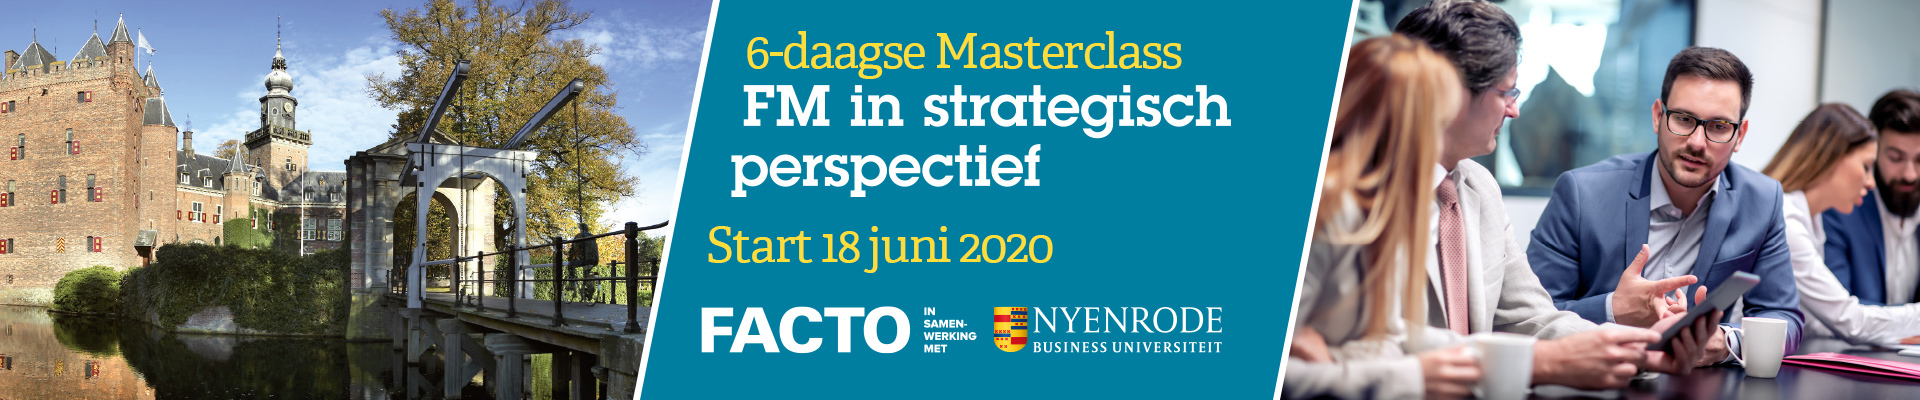 Facto Masterclass FM in strategisch perspectief 2020